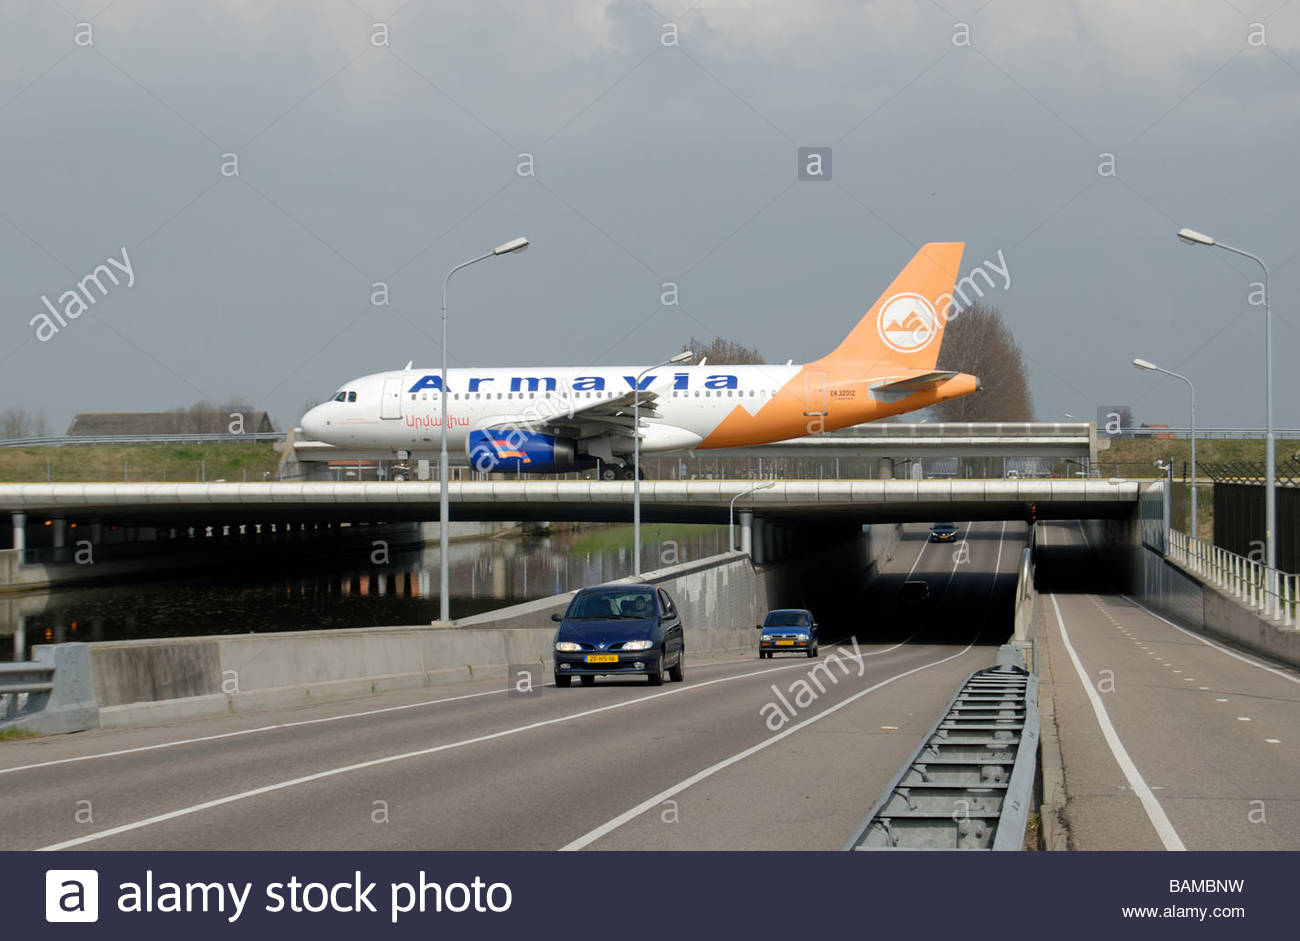 Schiphol The Netherlands An Armavia Armenian Airlines Airbus A319 taxi's across a provincial road - Stock Image